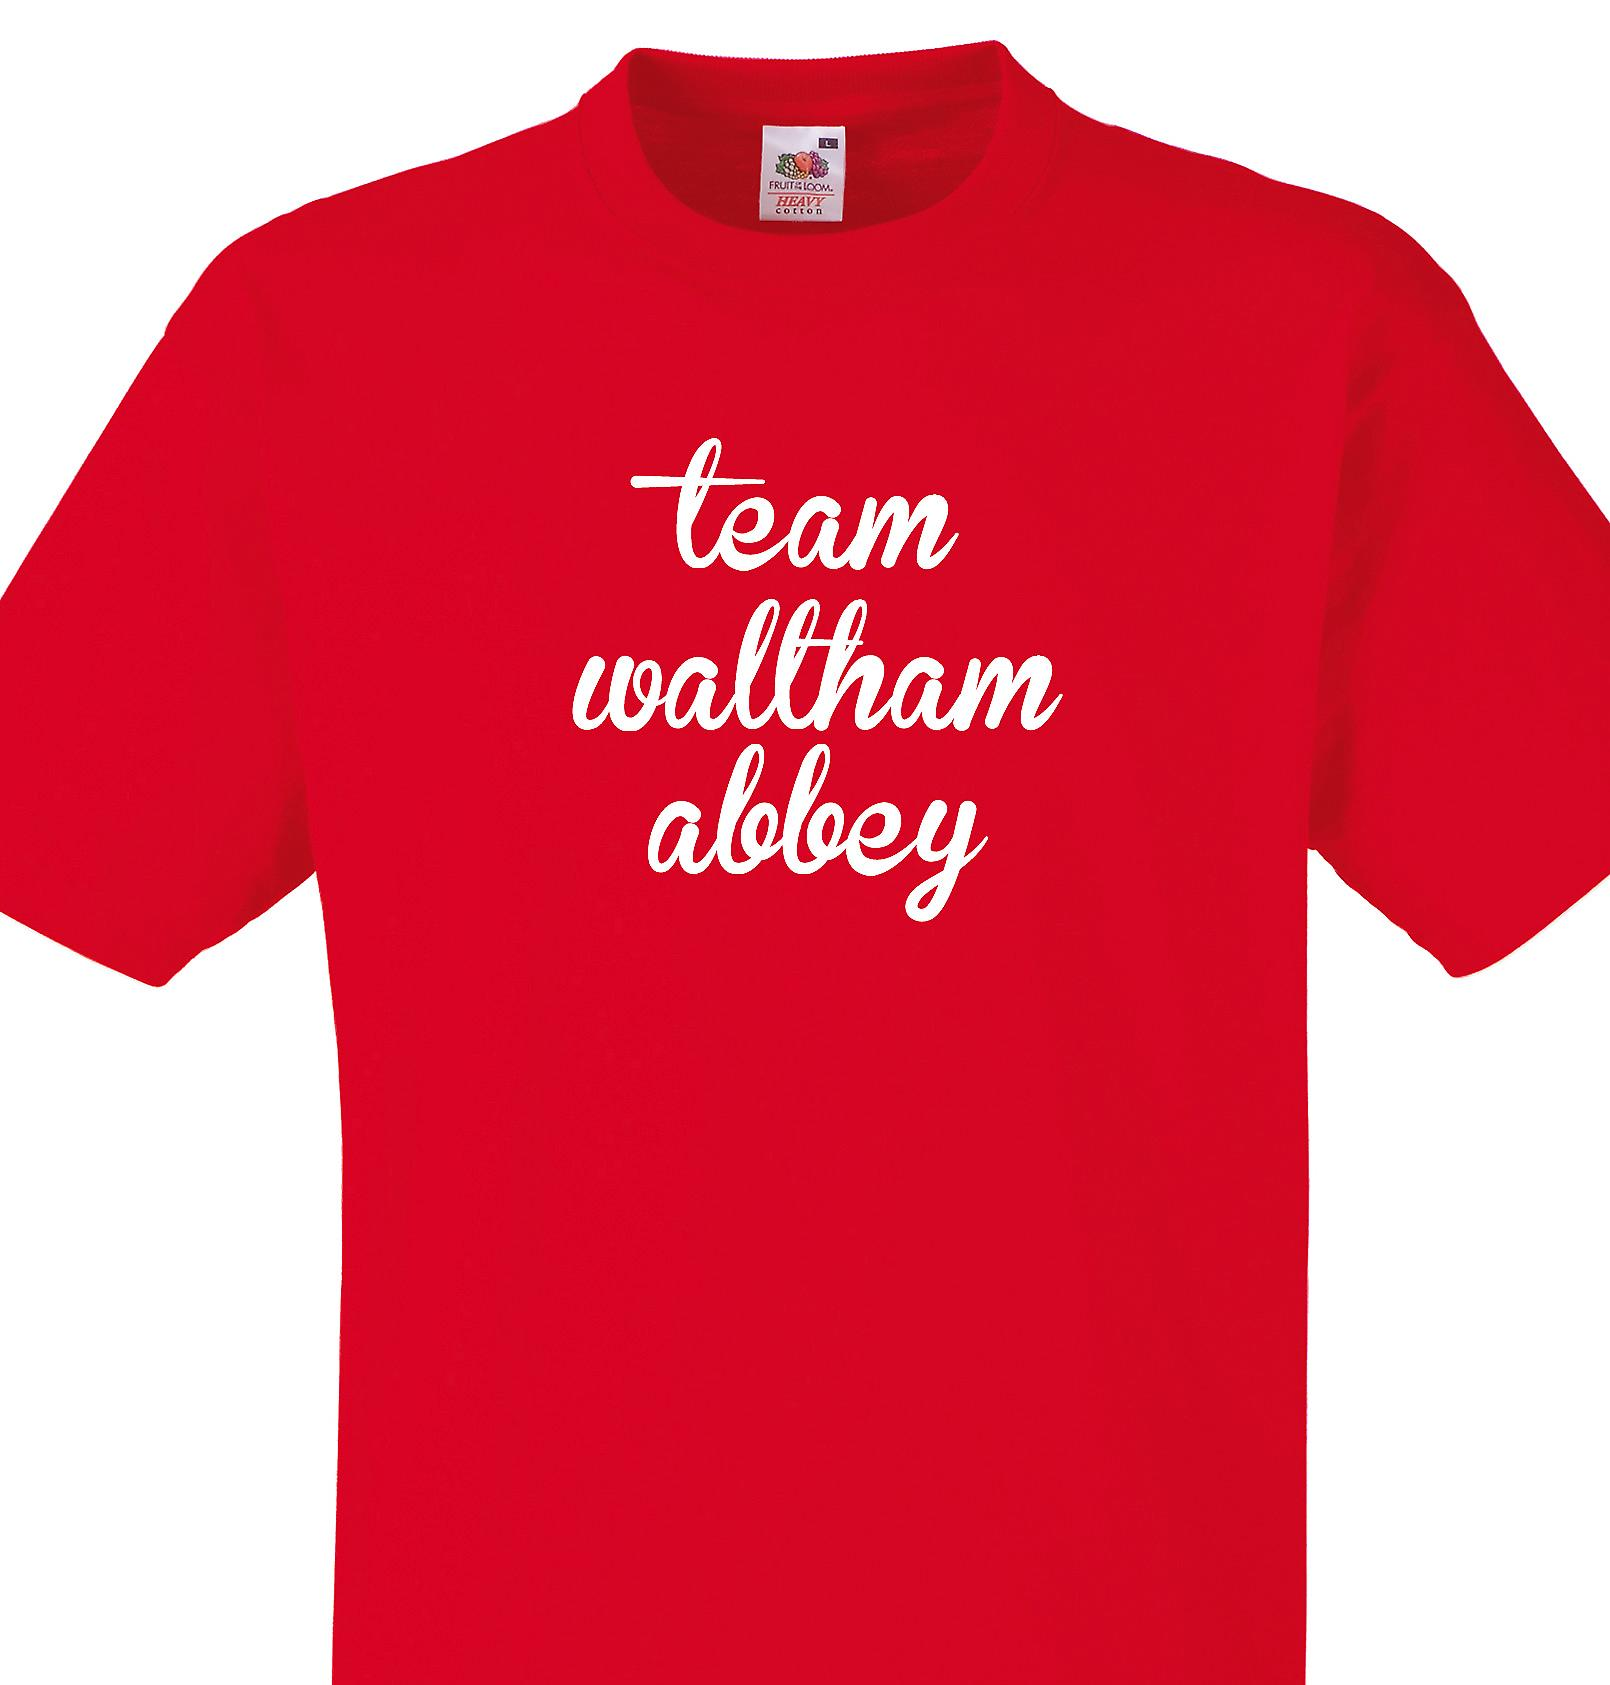 Team Waltham abbey Red T shirt